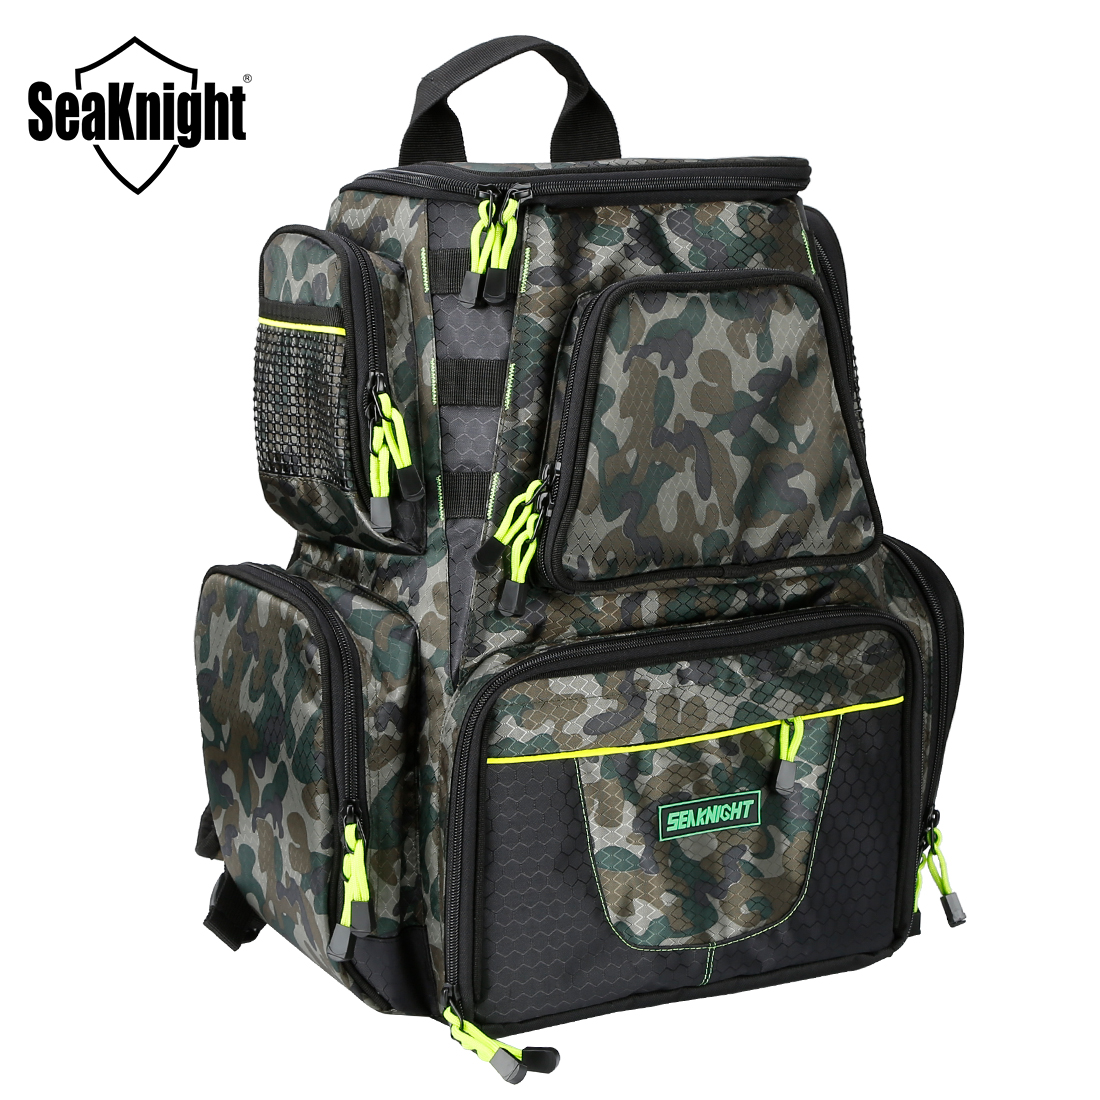 SeaKnight SK004 Fishing Bag 25L 7.5L Large Capacity Multifunctional Bag Backpack Outdoor Fishing Tackle Bag 44*41*20 /38*34*18cm|Fishing Bags|   - AliExpress